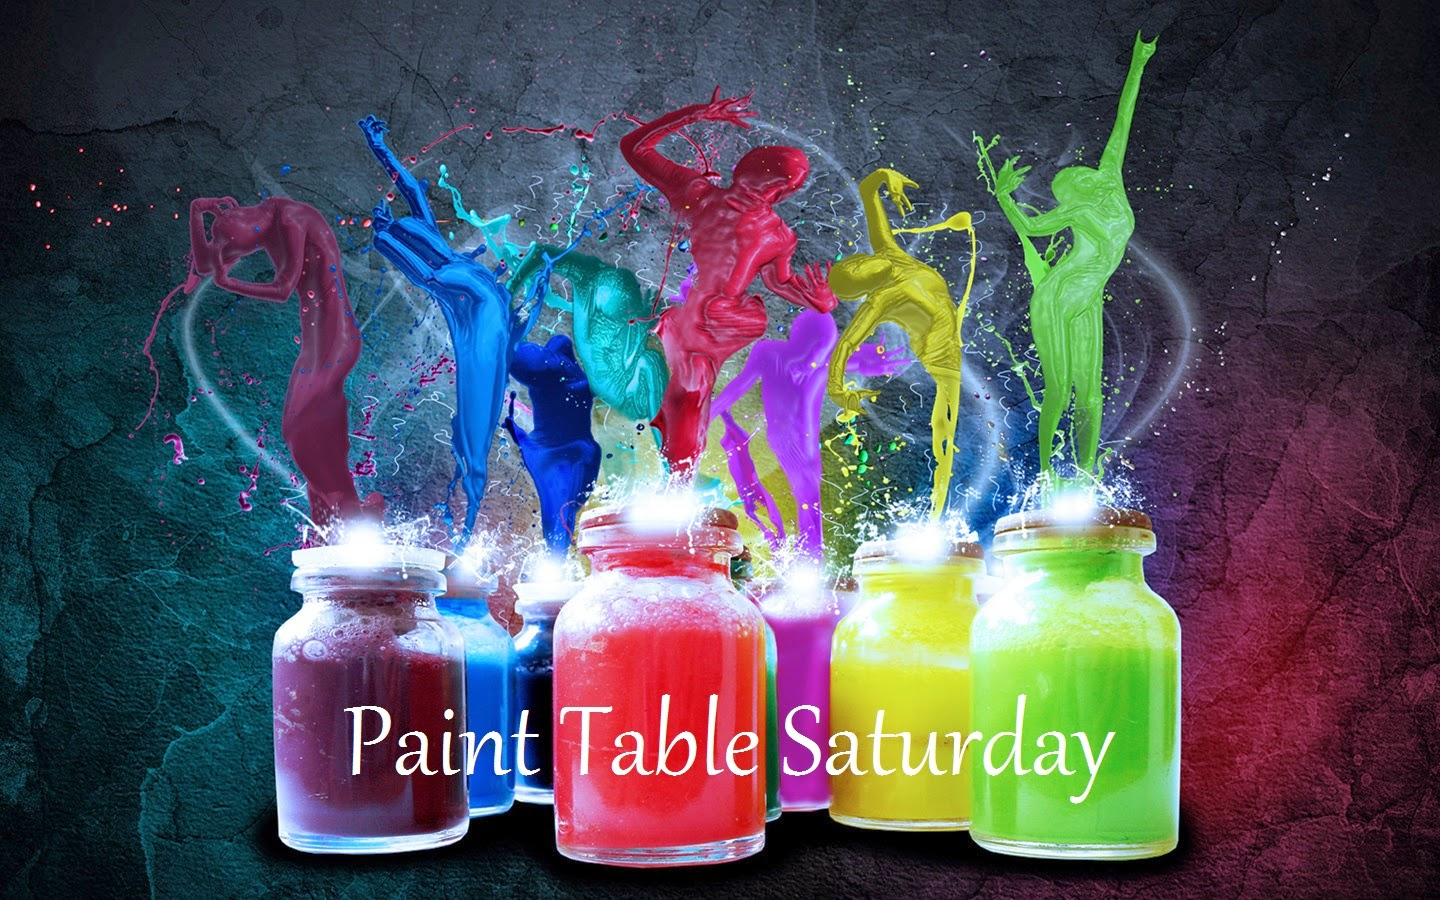 Paint Table Saturday !